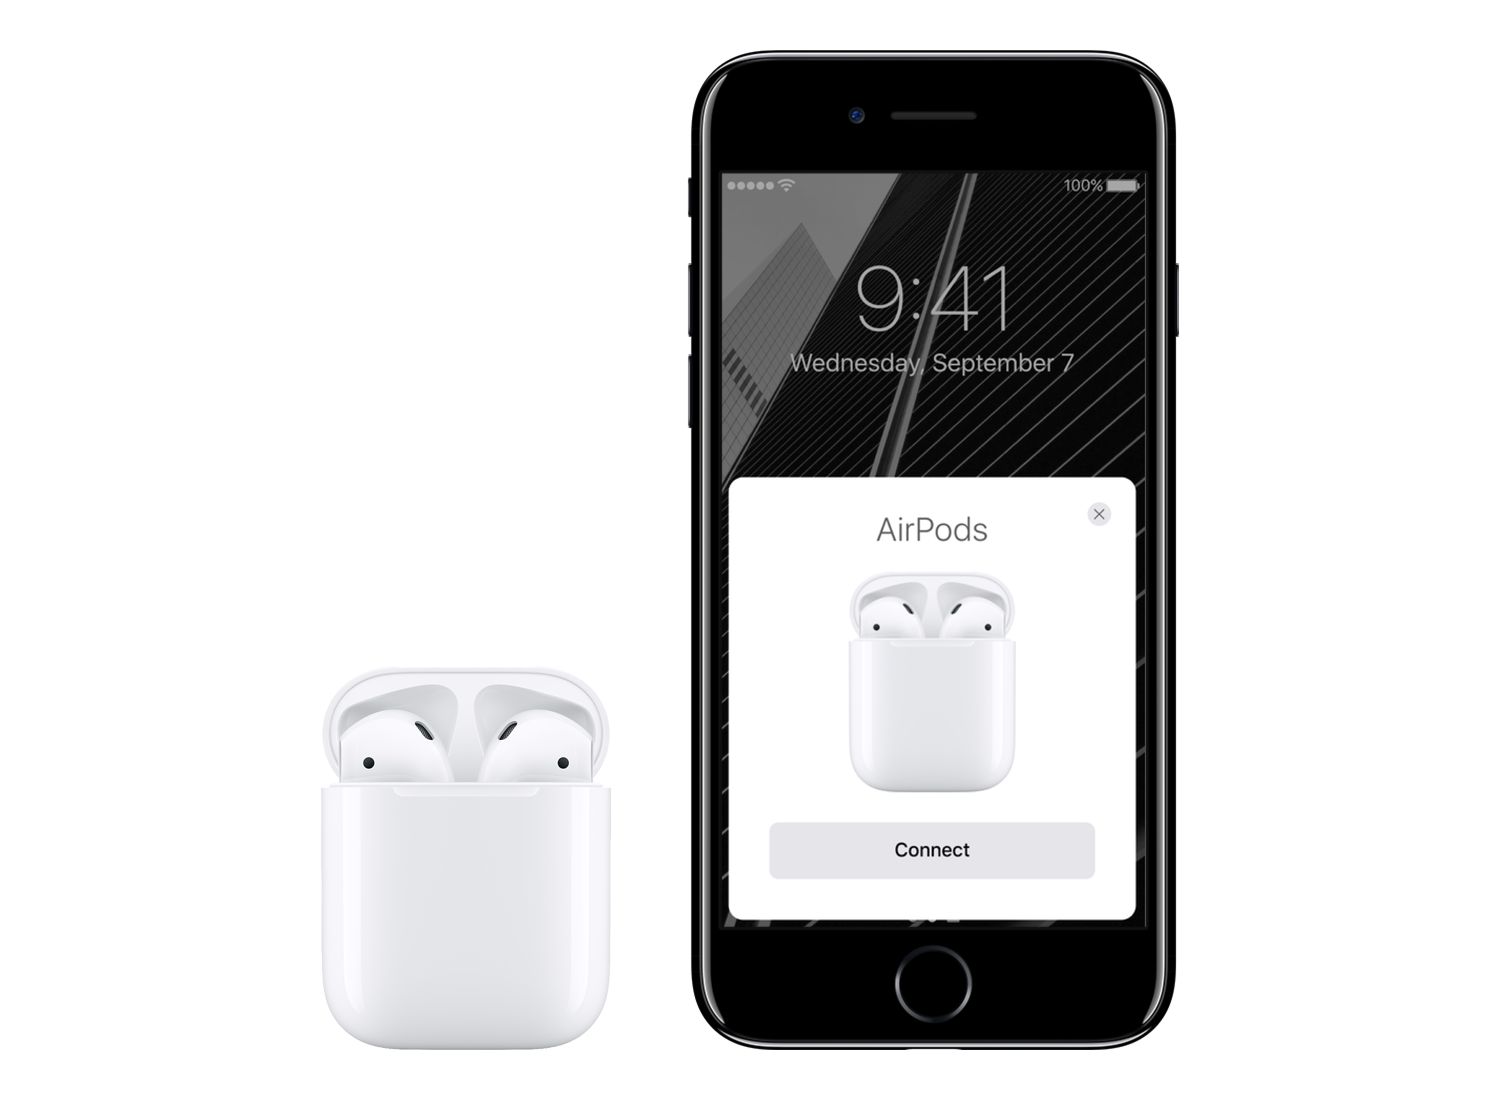 Solo Airpods Apple Mobile Phone Beats Plus PNG Image